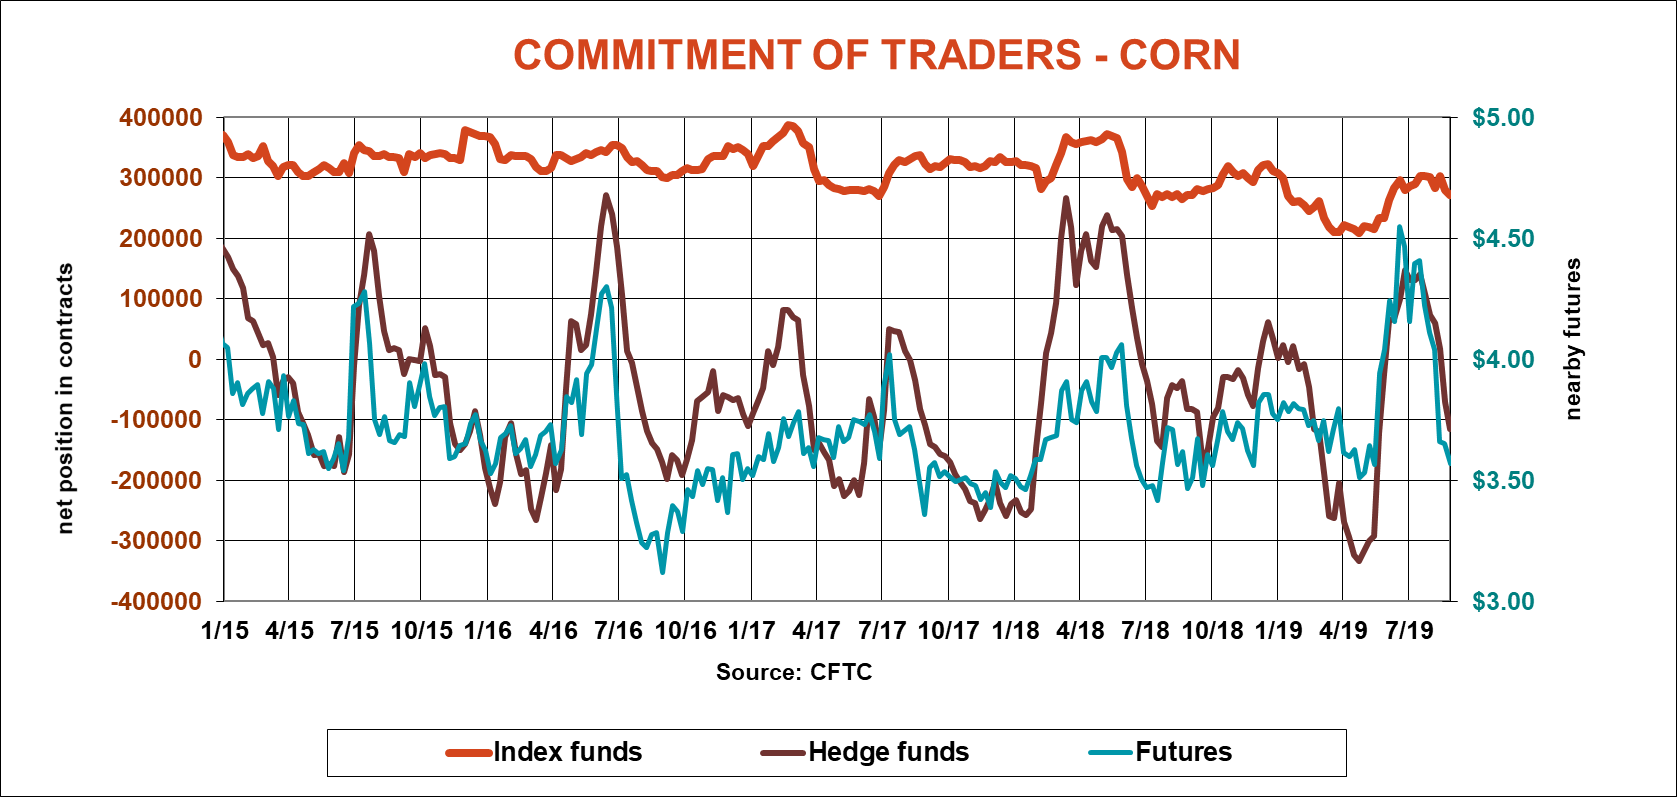 commitment-traders-corn-cftc-083019.png